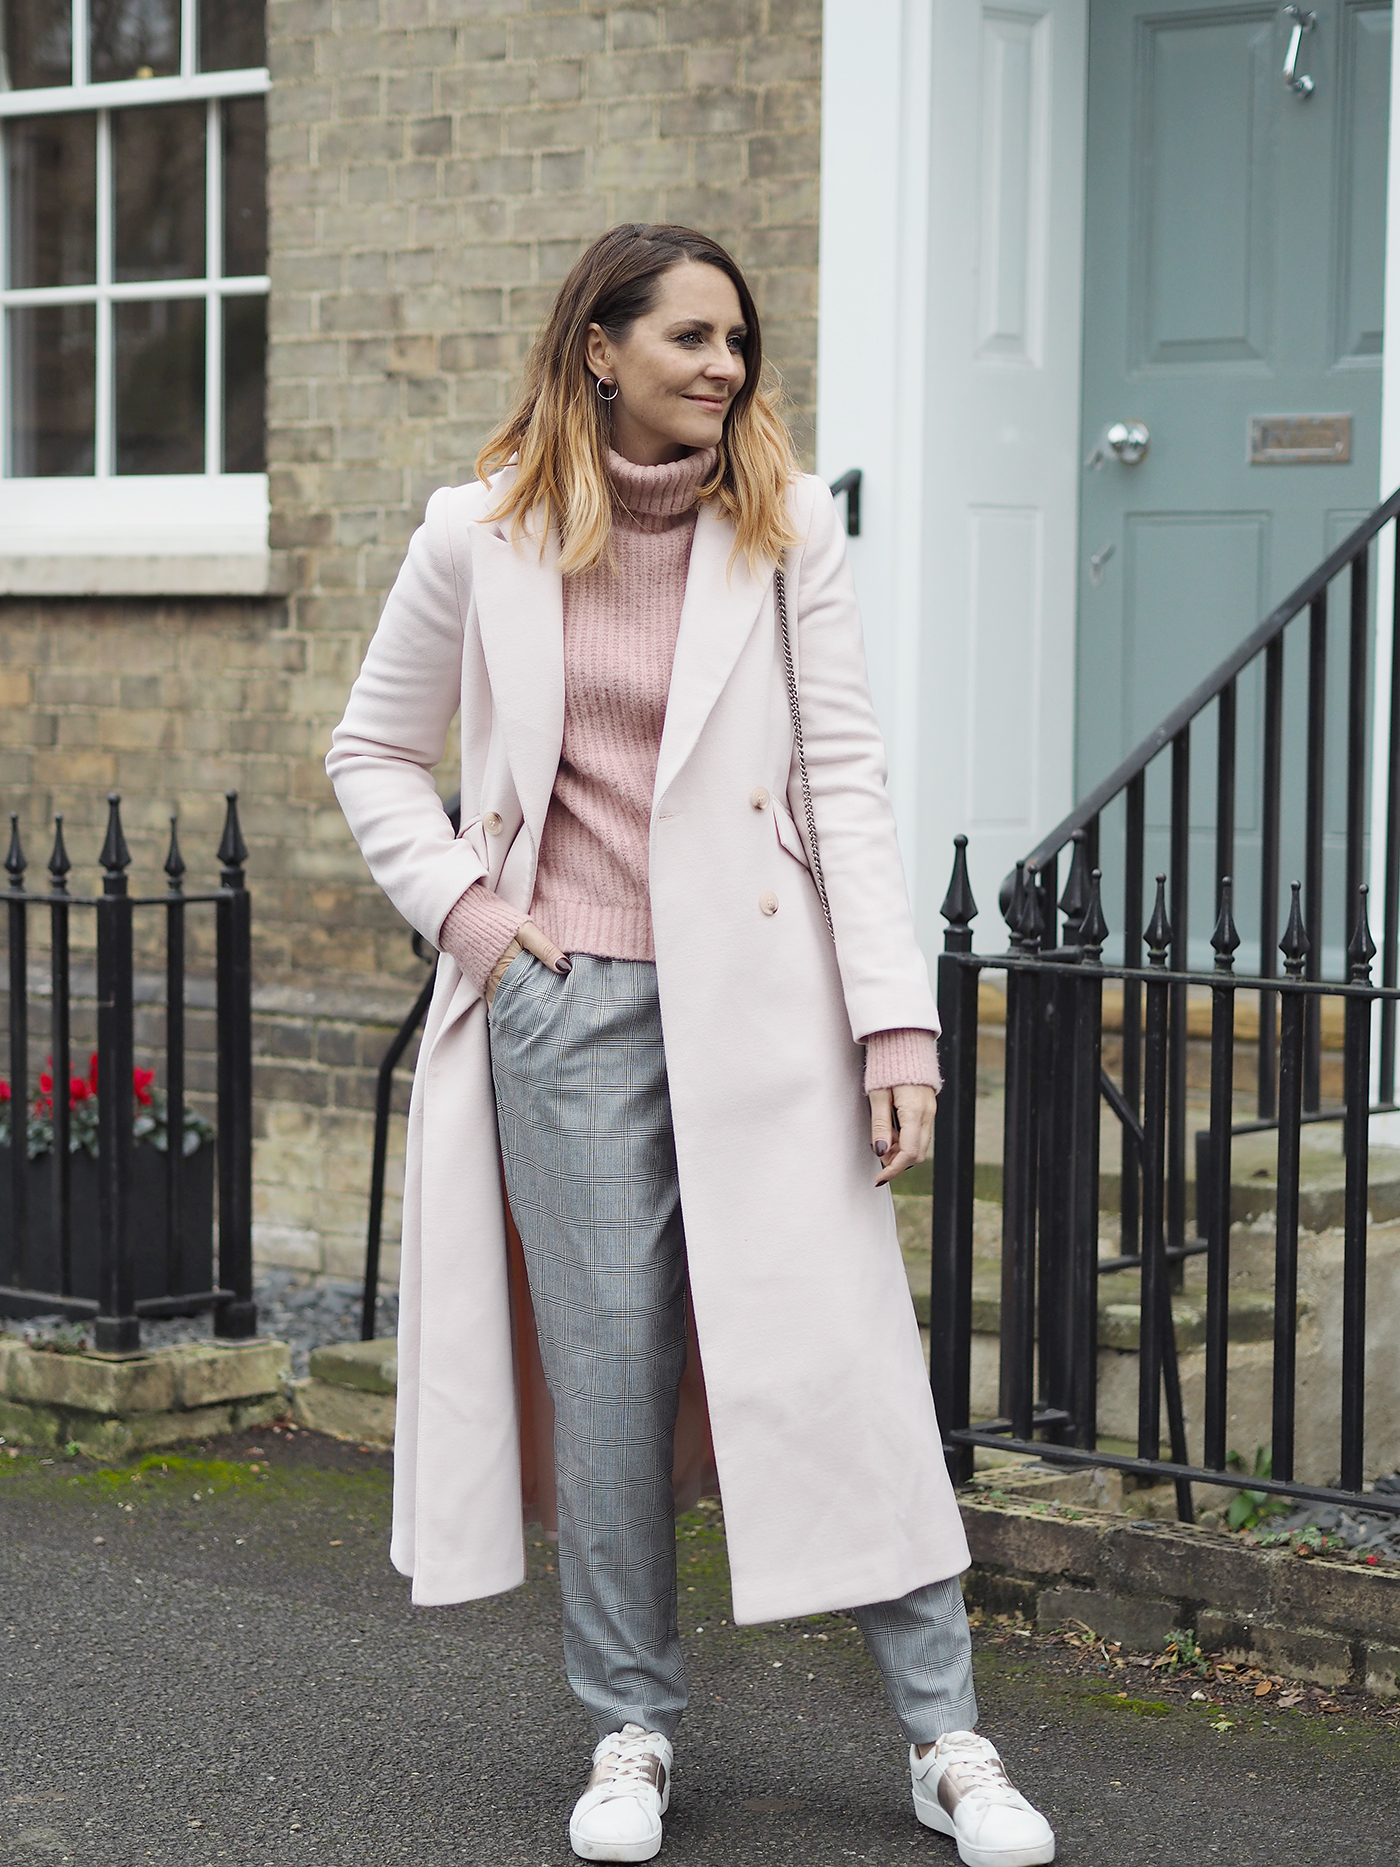 pink winter coat and pink jumper checked trousers outfit